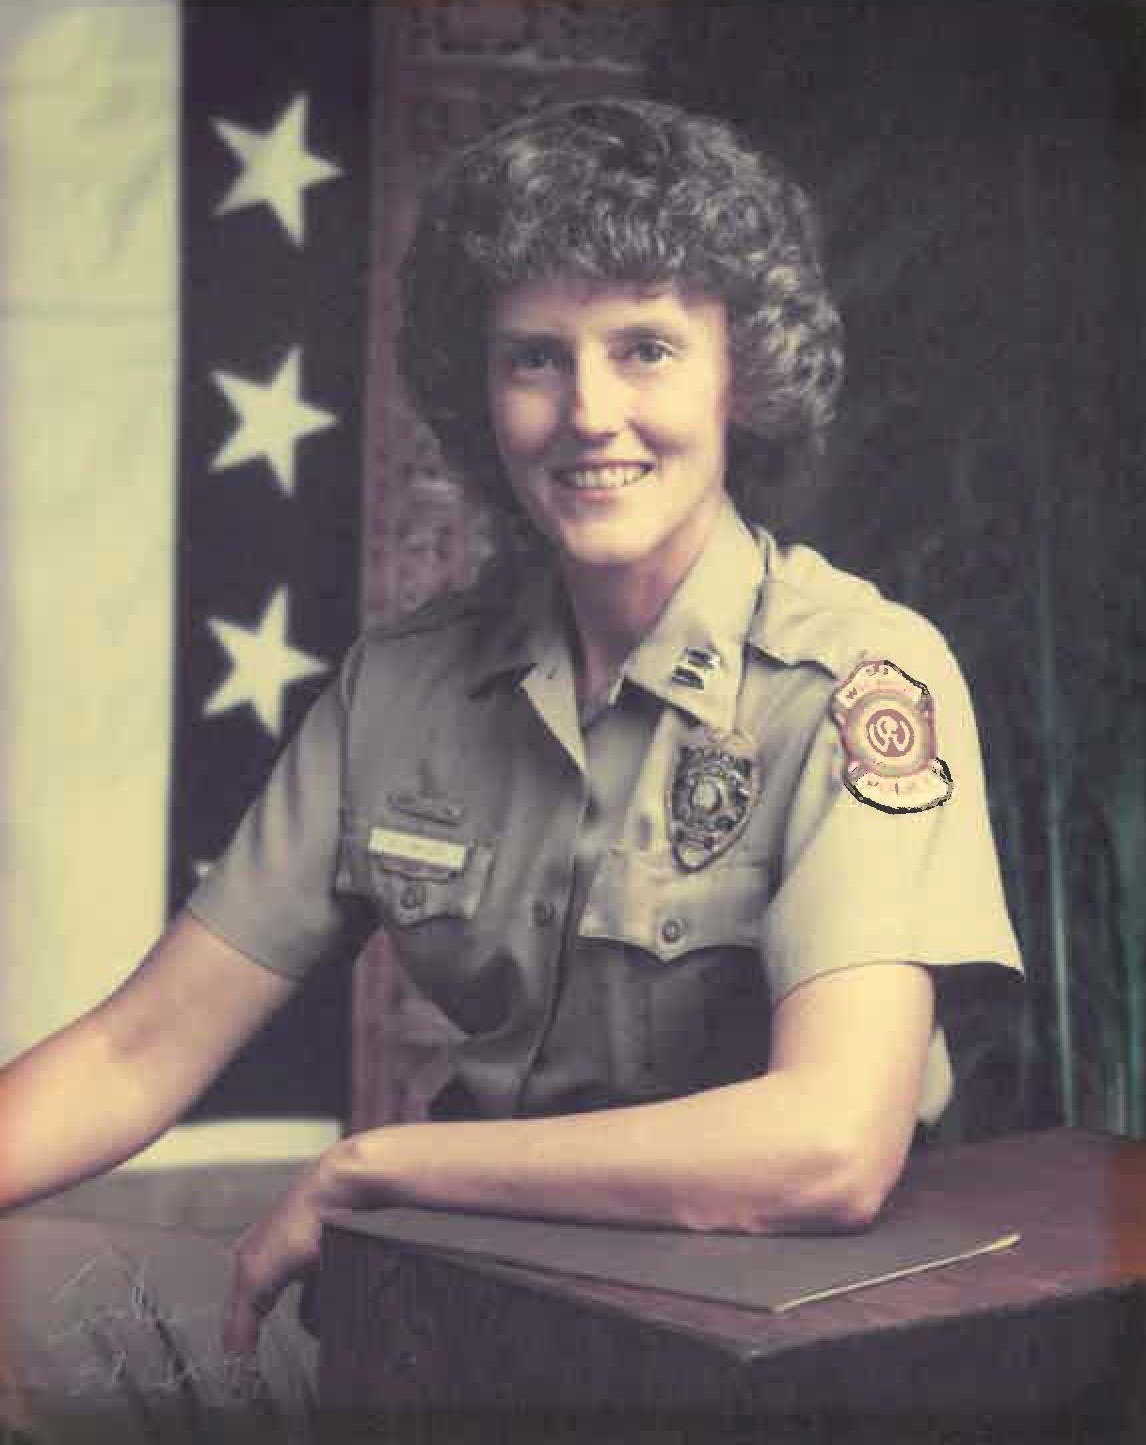 By the time of this photograph in 1989, Beckie Miller had risen in the ranks to captain with the Wichita Police Department.